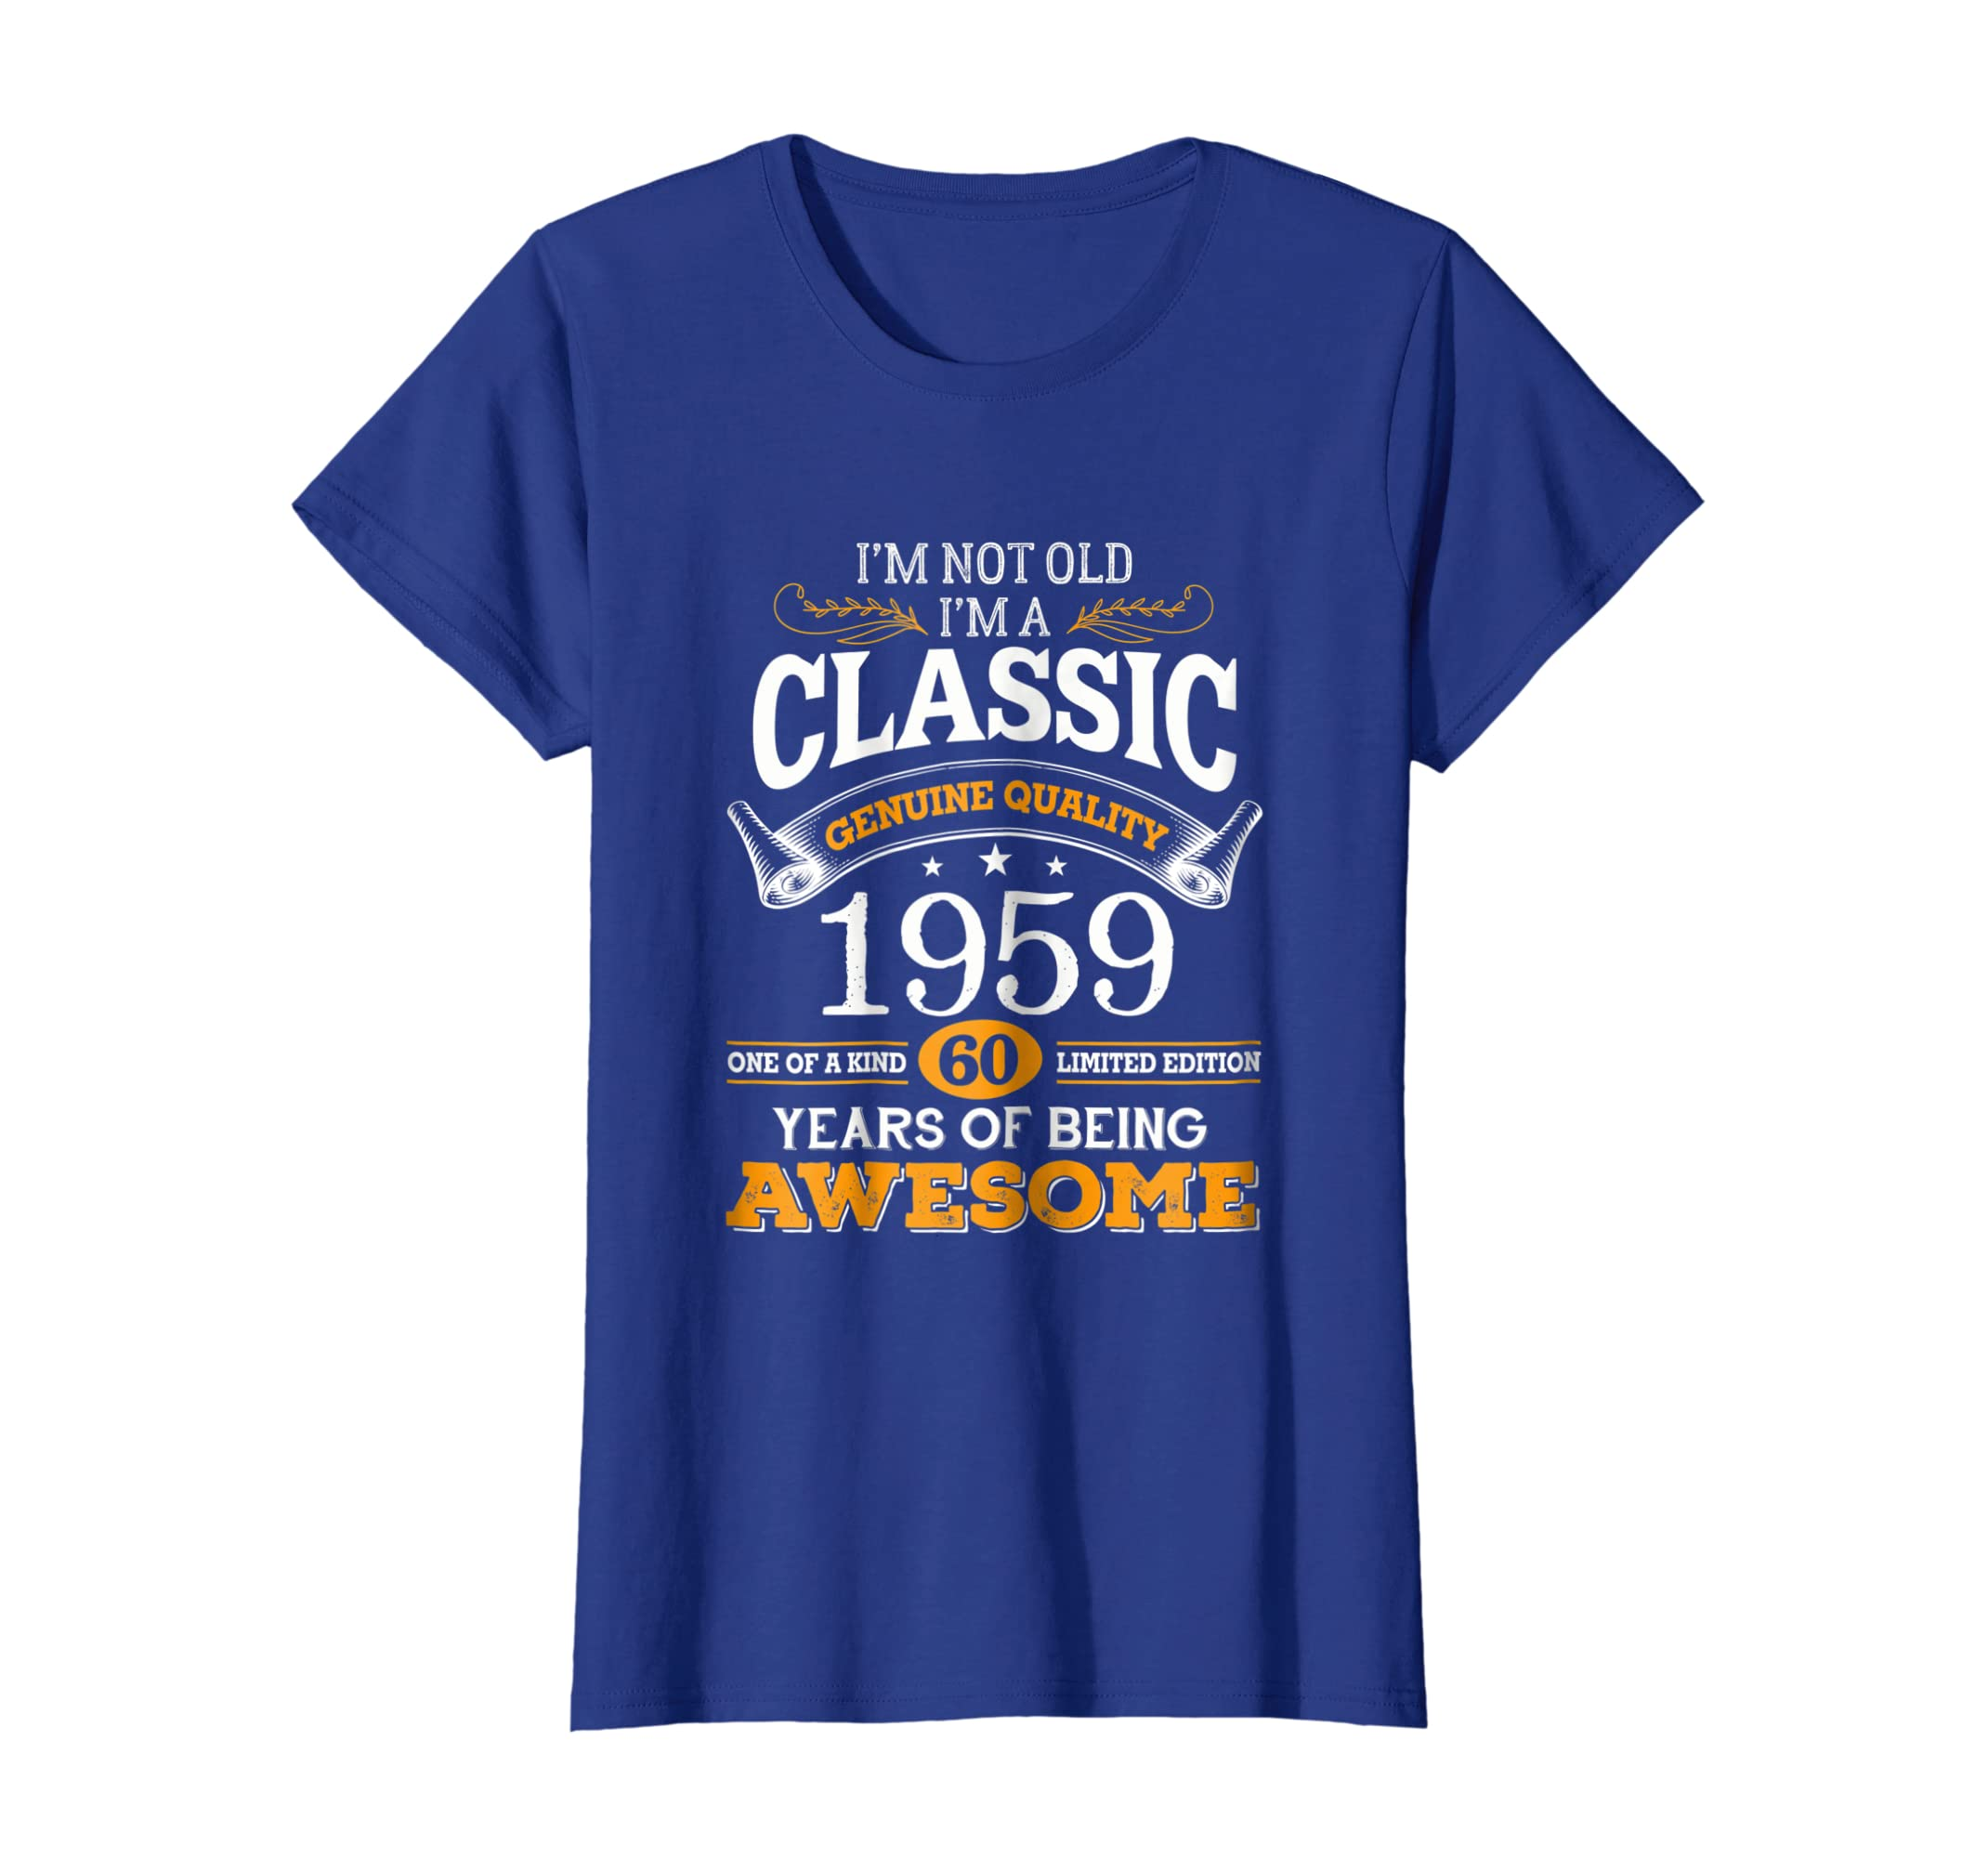 2748986c Amazon.com: Classic Funny 1959 60th Birthday T-shirts Years Of Awesome:  Clothing